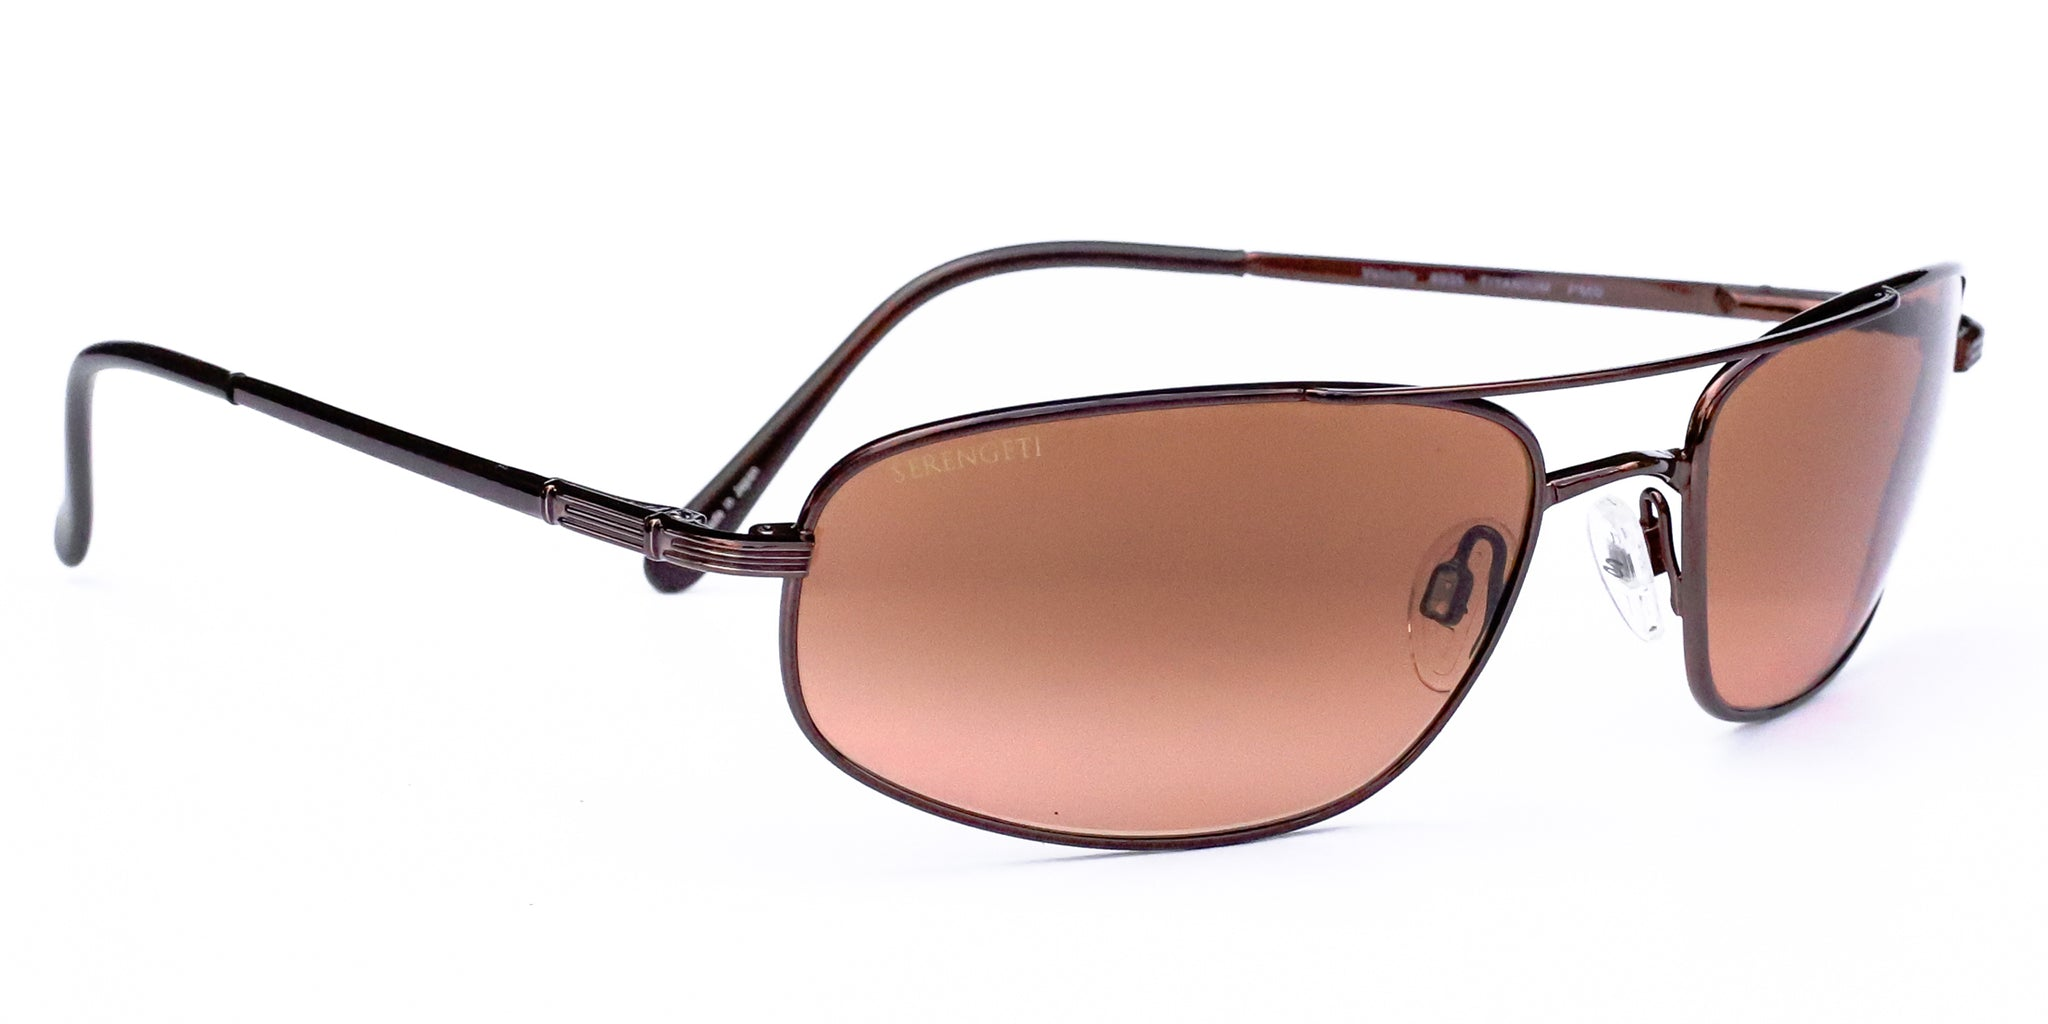 575a07e753 Serengeti Velocity Progressive Prescription Sunglasses - Flight Sunglasses